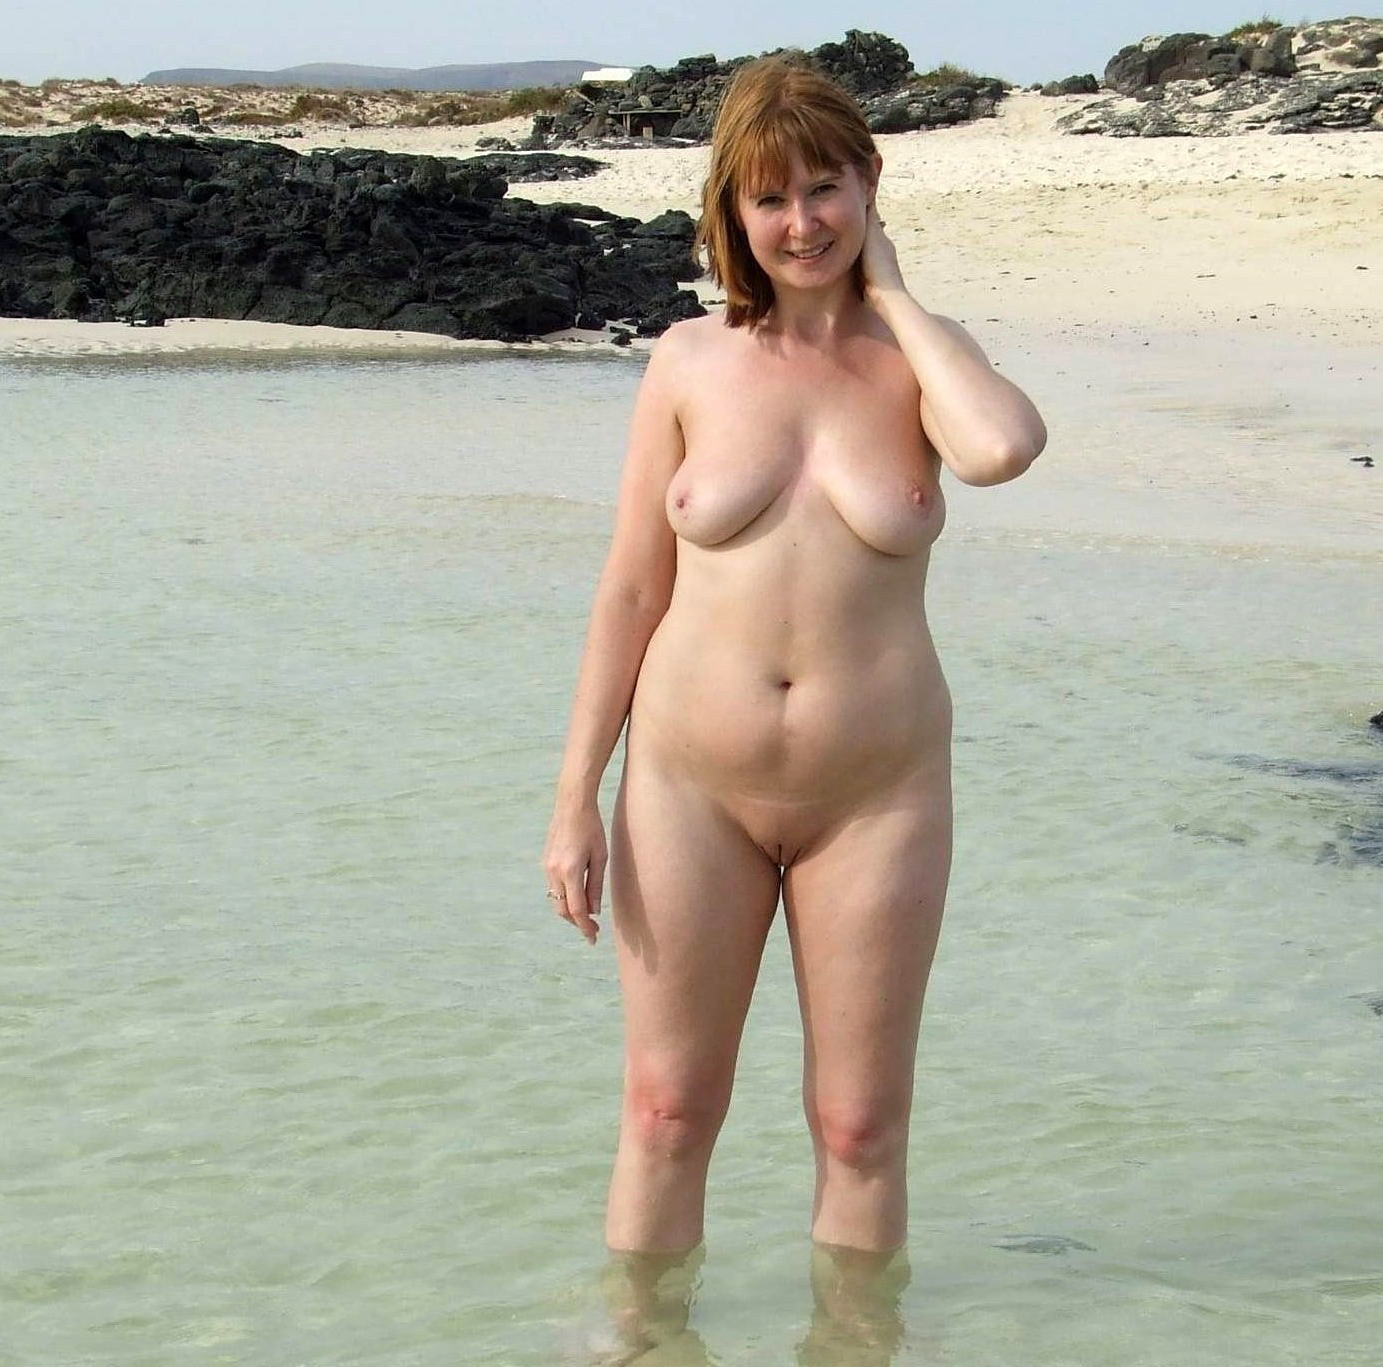 Nude beaches Mature excited too